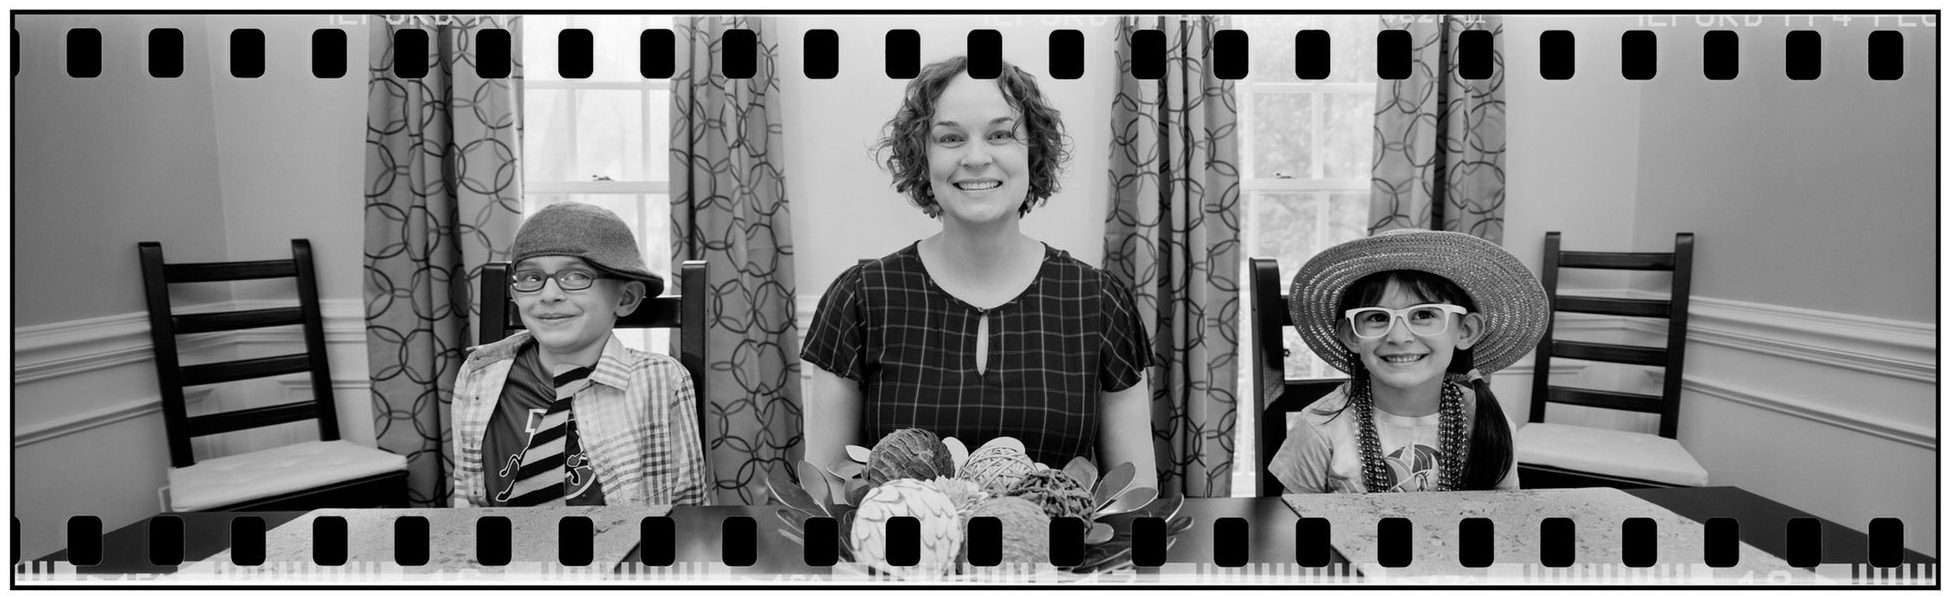 @tangible_tones the fam… Reposted for #ilfordphoto #fridayfavourites theme of #35mmfp4 #BelieveInFilm